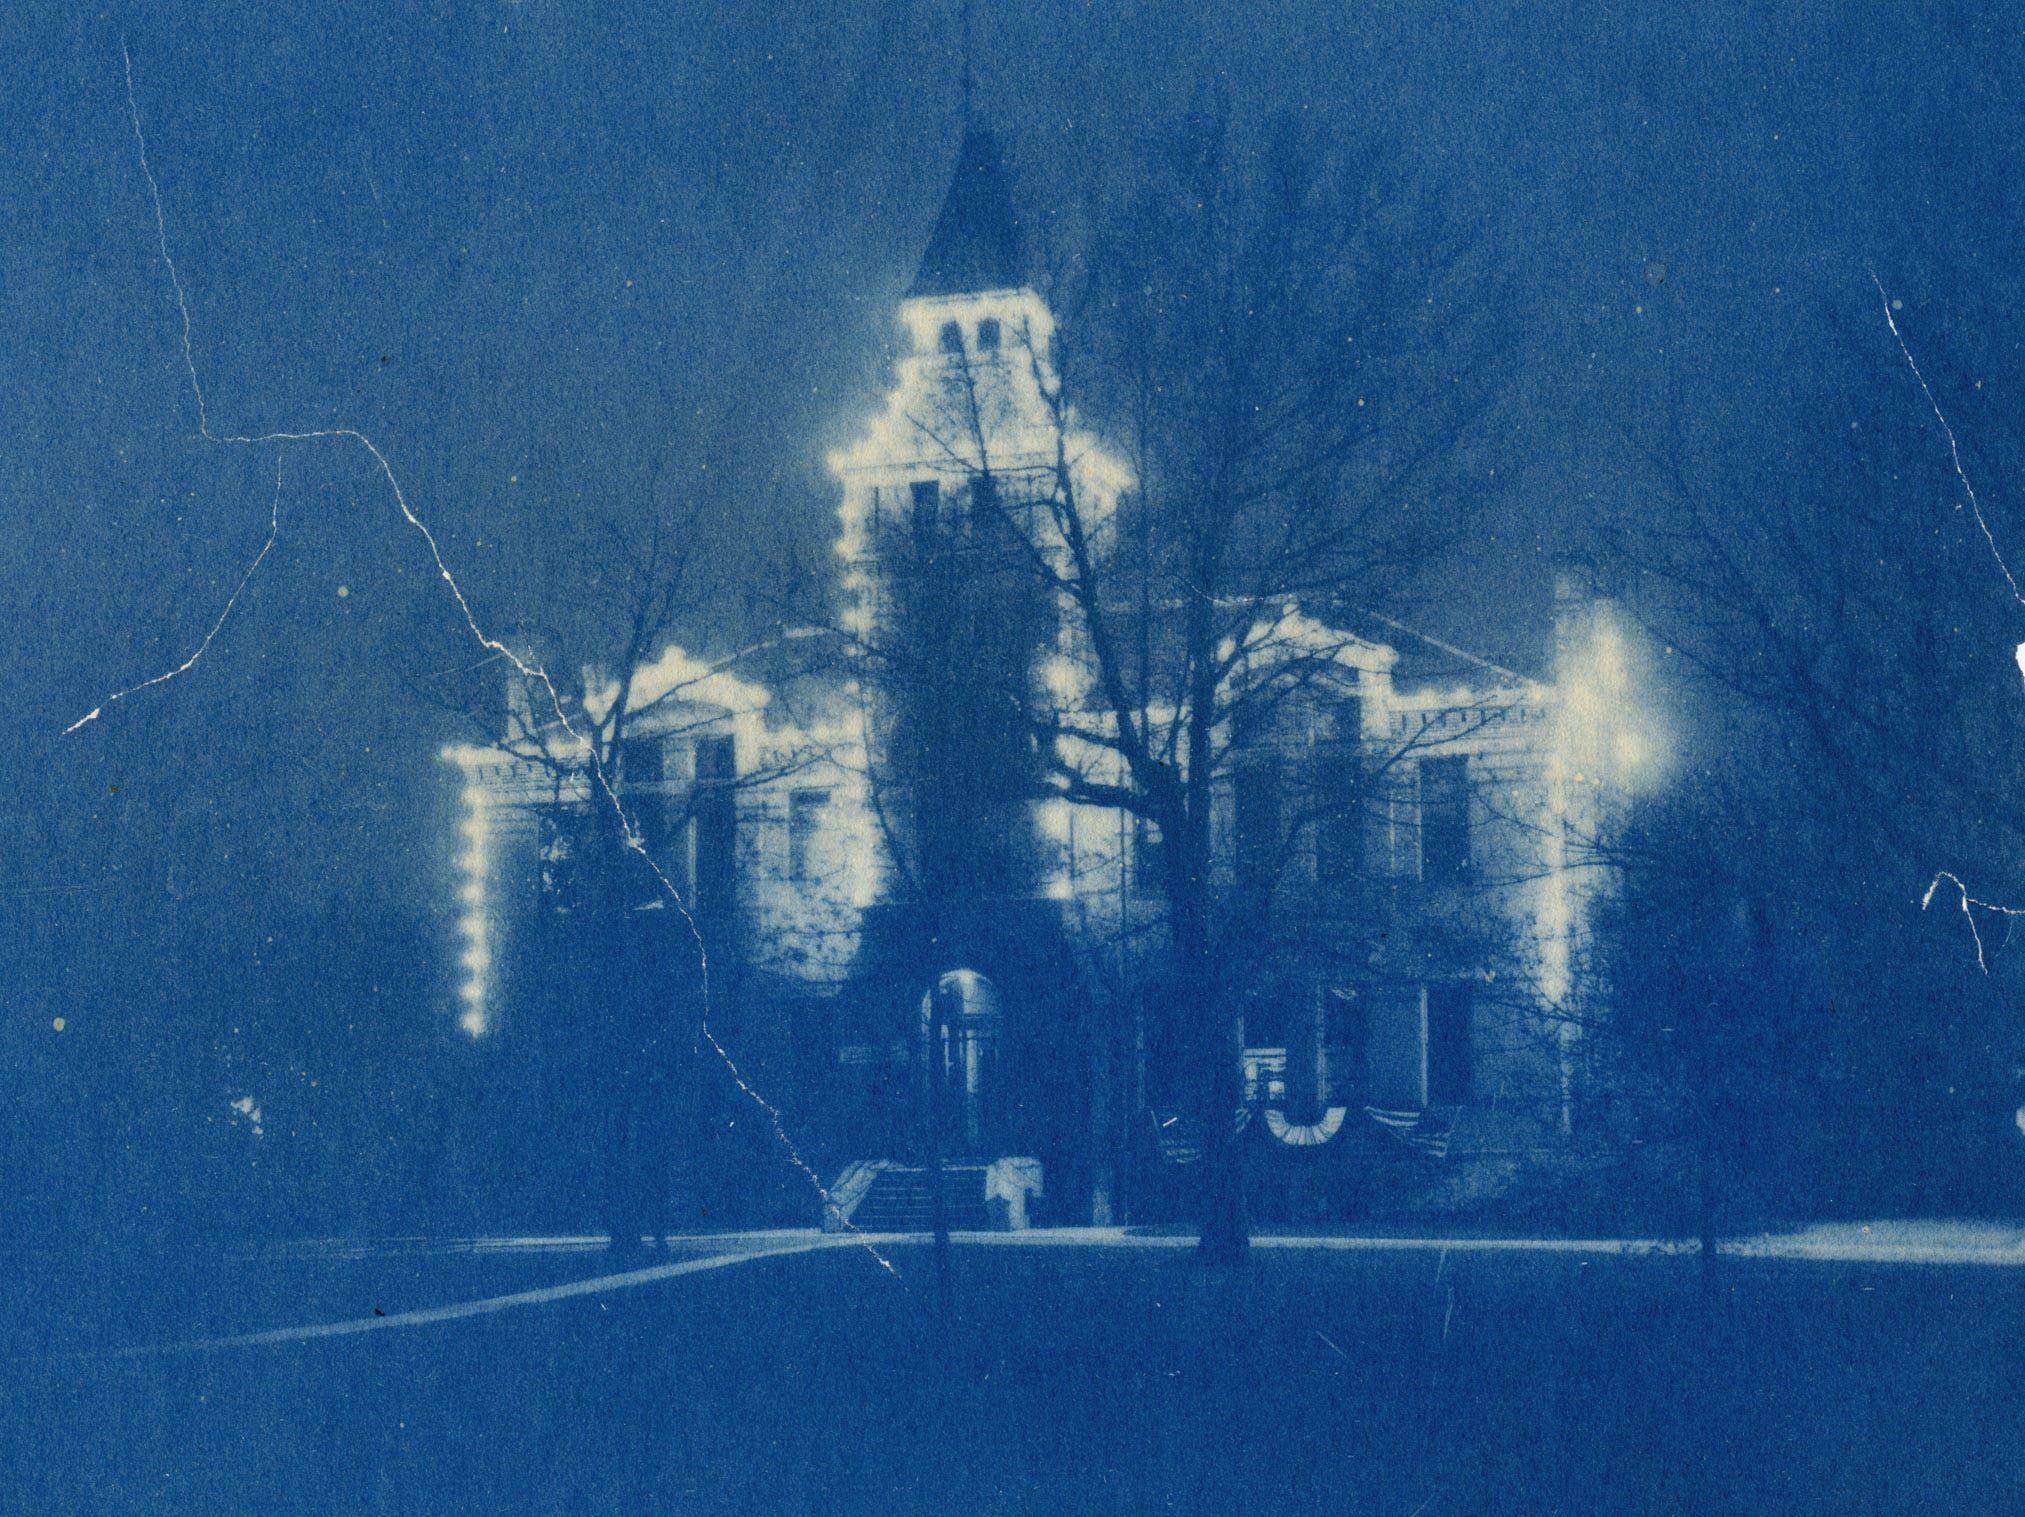 Cyanotype photograph of Linton Hall lit up at night. The building has been decorated for lights, presumably for Christmas, circa 1910.